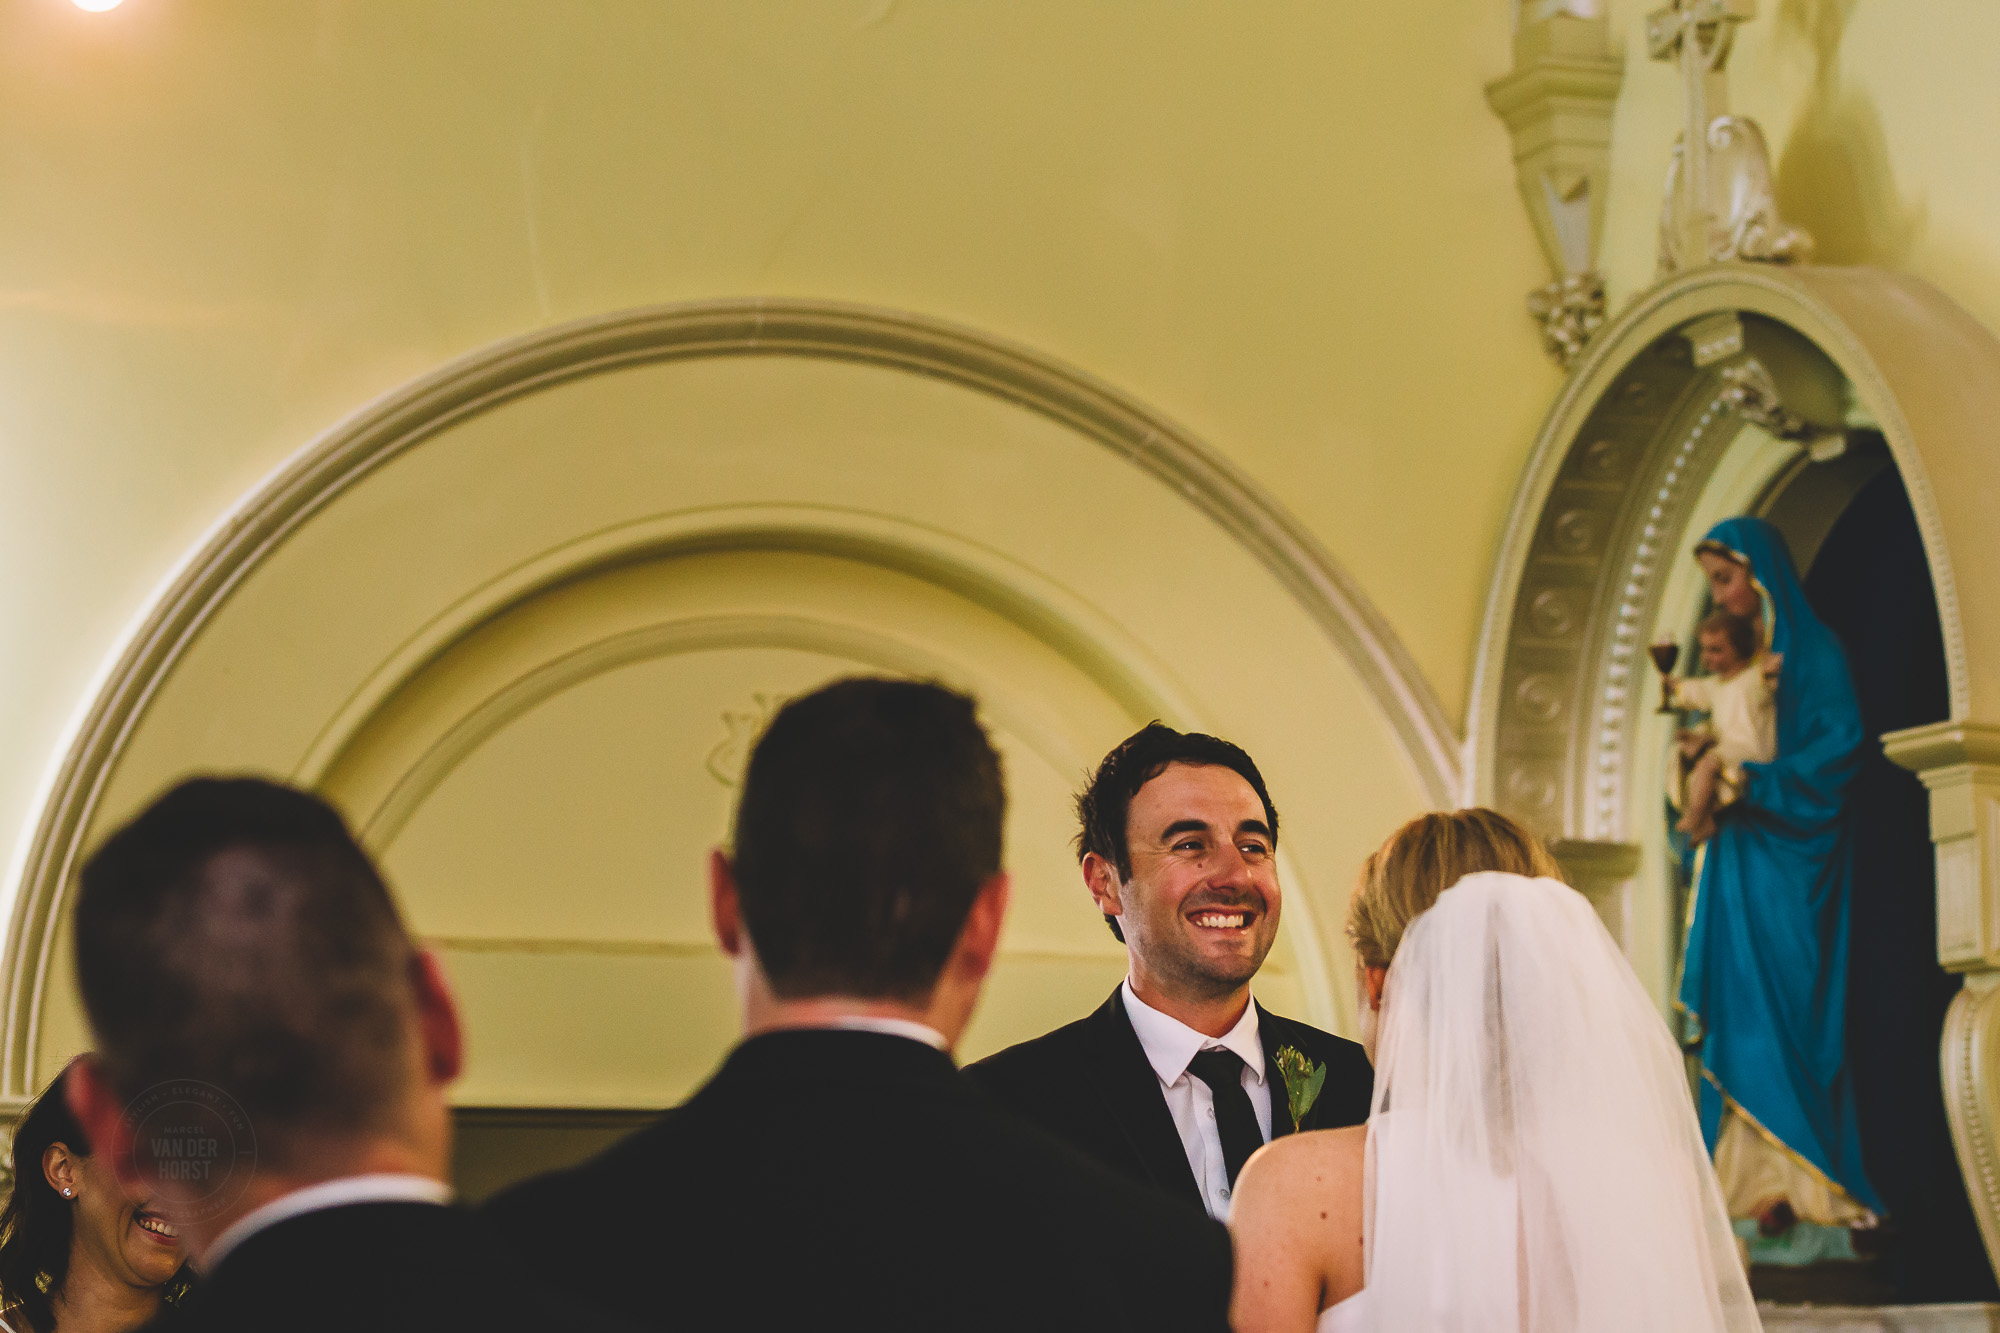 Rutherglen-Wedding-Photographer-1036.jpg